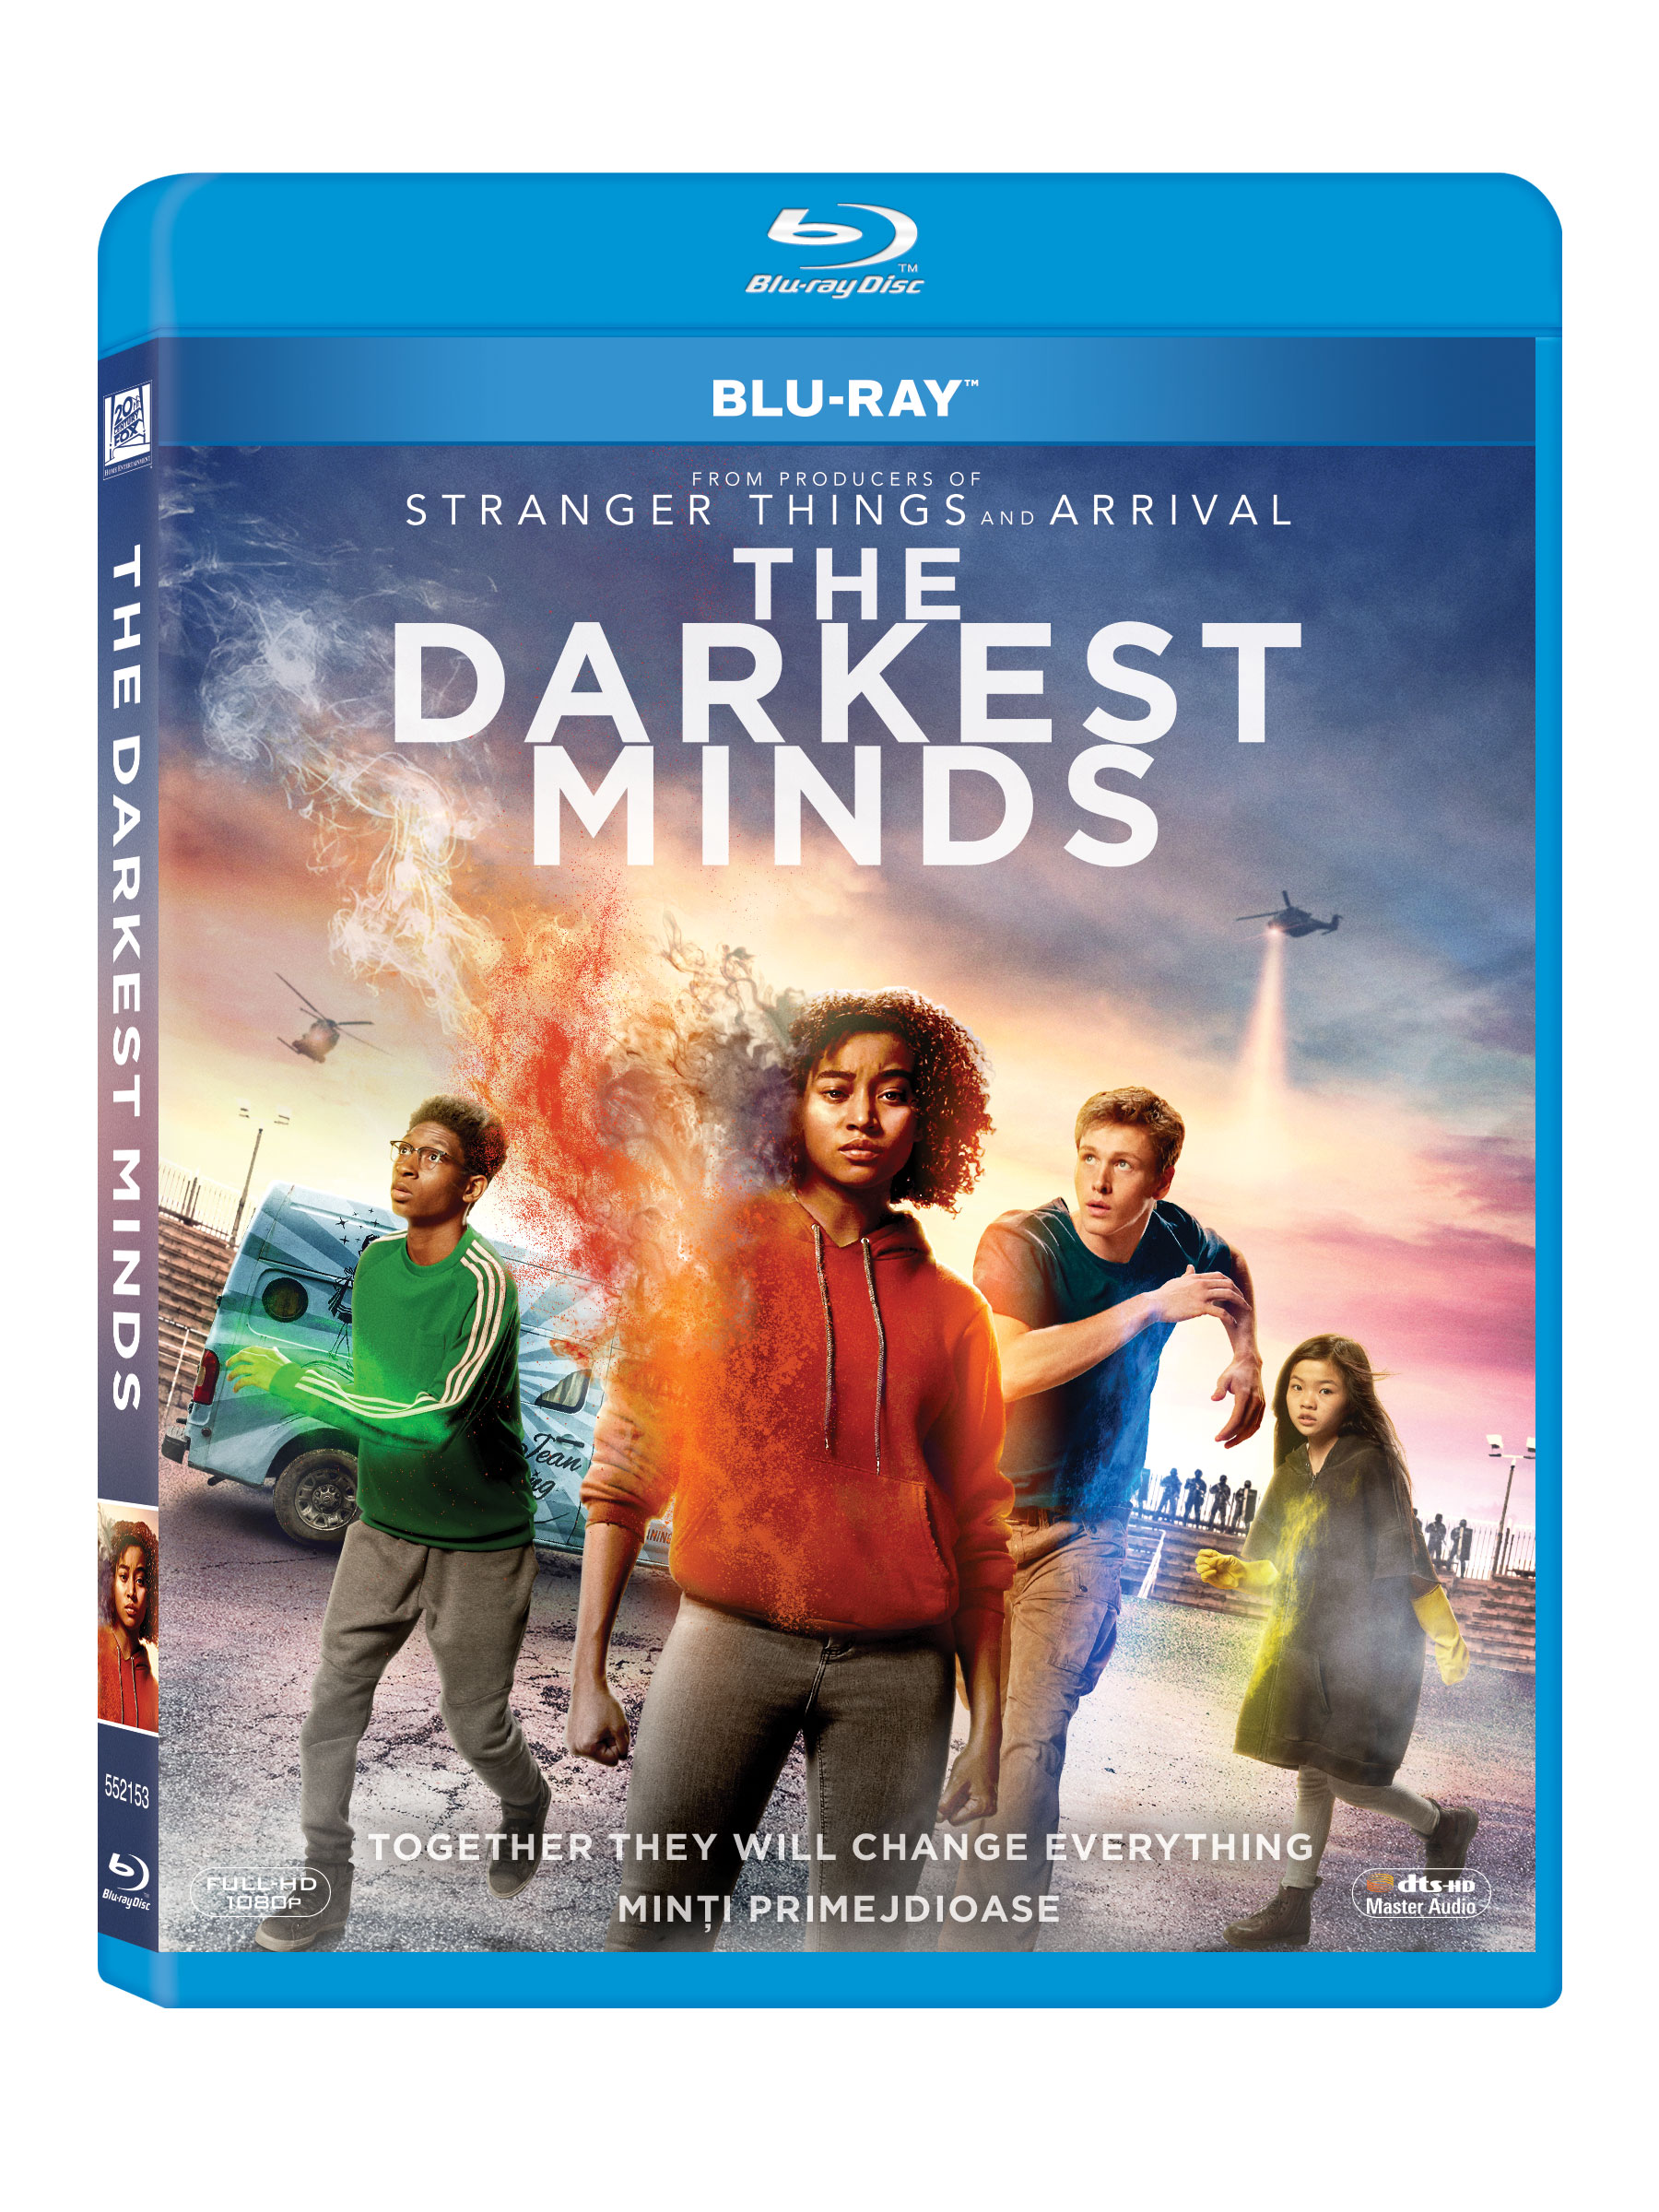 Minti Primejdioase (Blu Ray Disc) / The Darkest Minds thumbnail